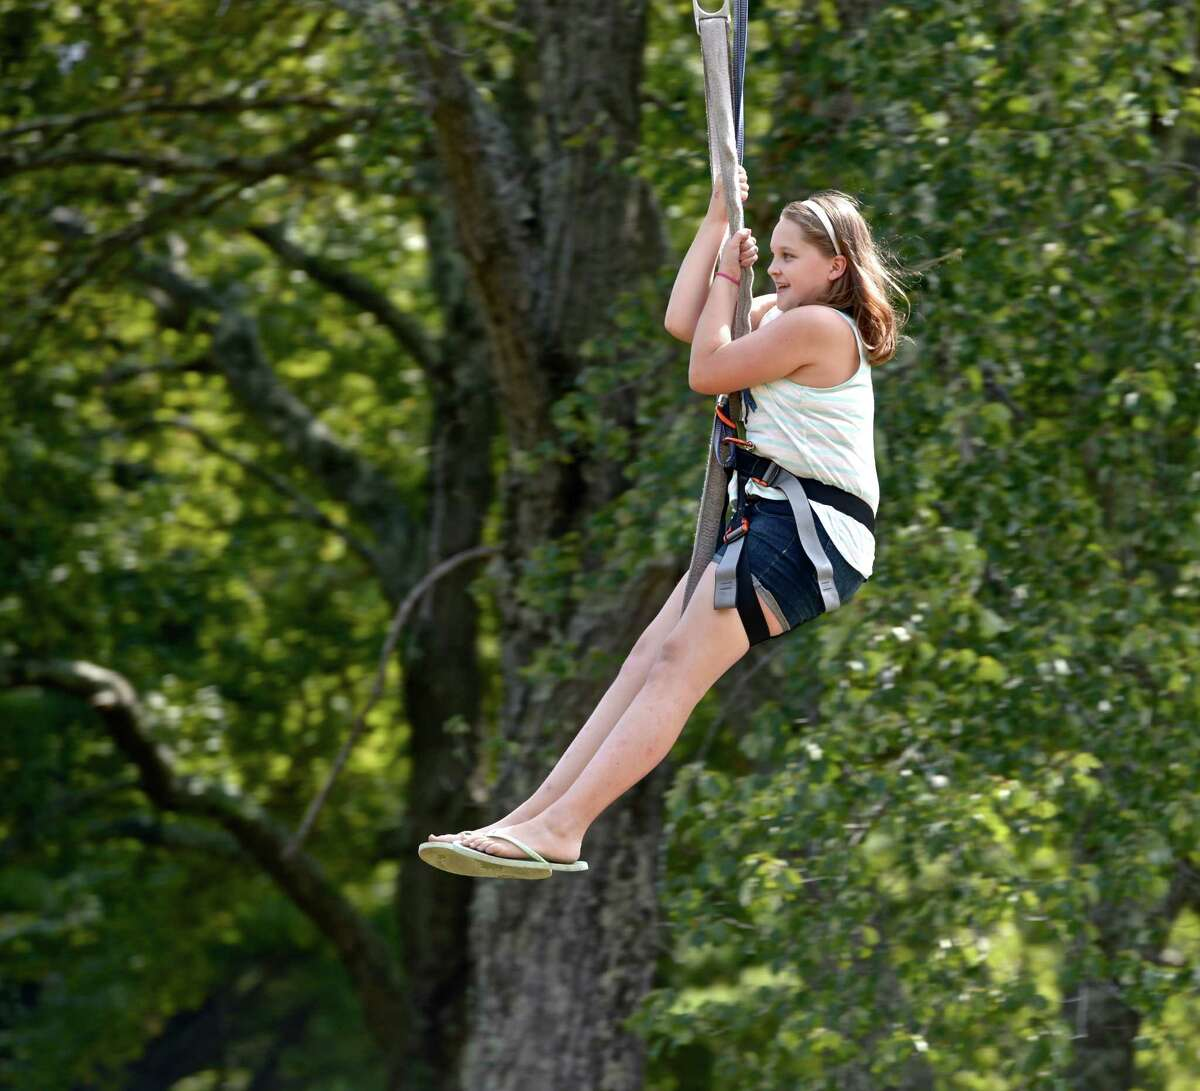 Madison Hayden, 10, of New Milford, takes a ride on a zip line at Harrybrooke Park, in New Milford. A new study shows that zip line injuries rose about 50 percent between 2009 and 2012.